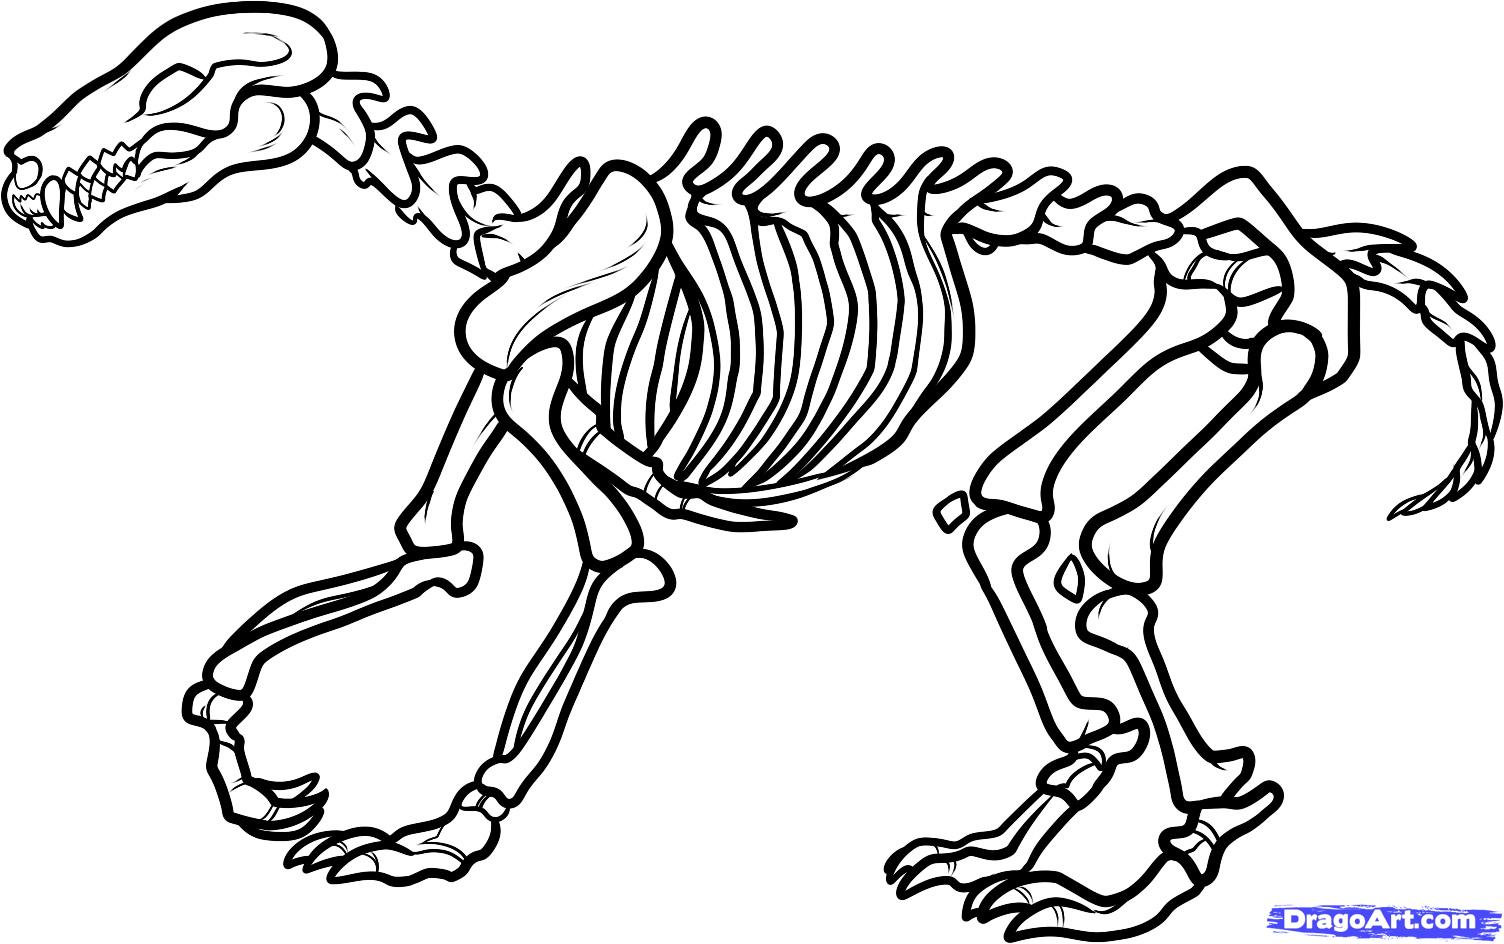 Scary dinosaur coloring pages - Dinosaur 20bones 20drawing